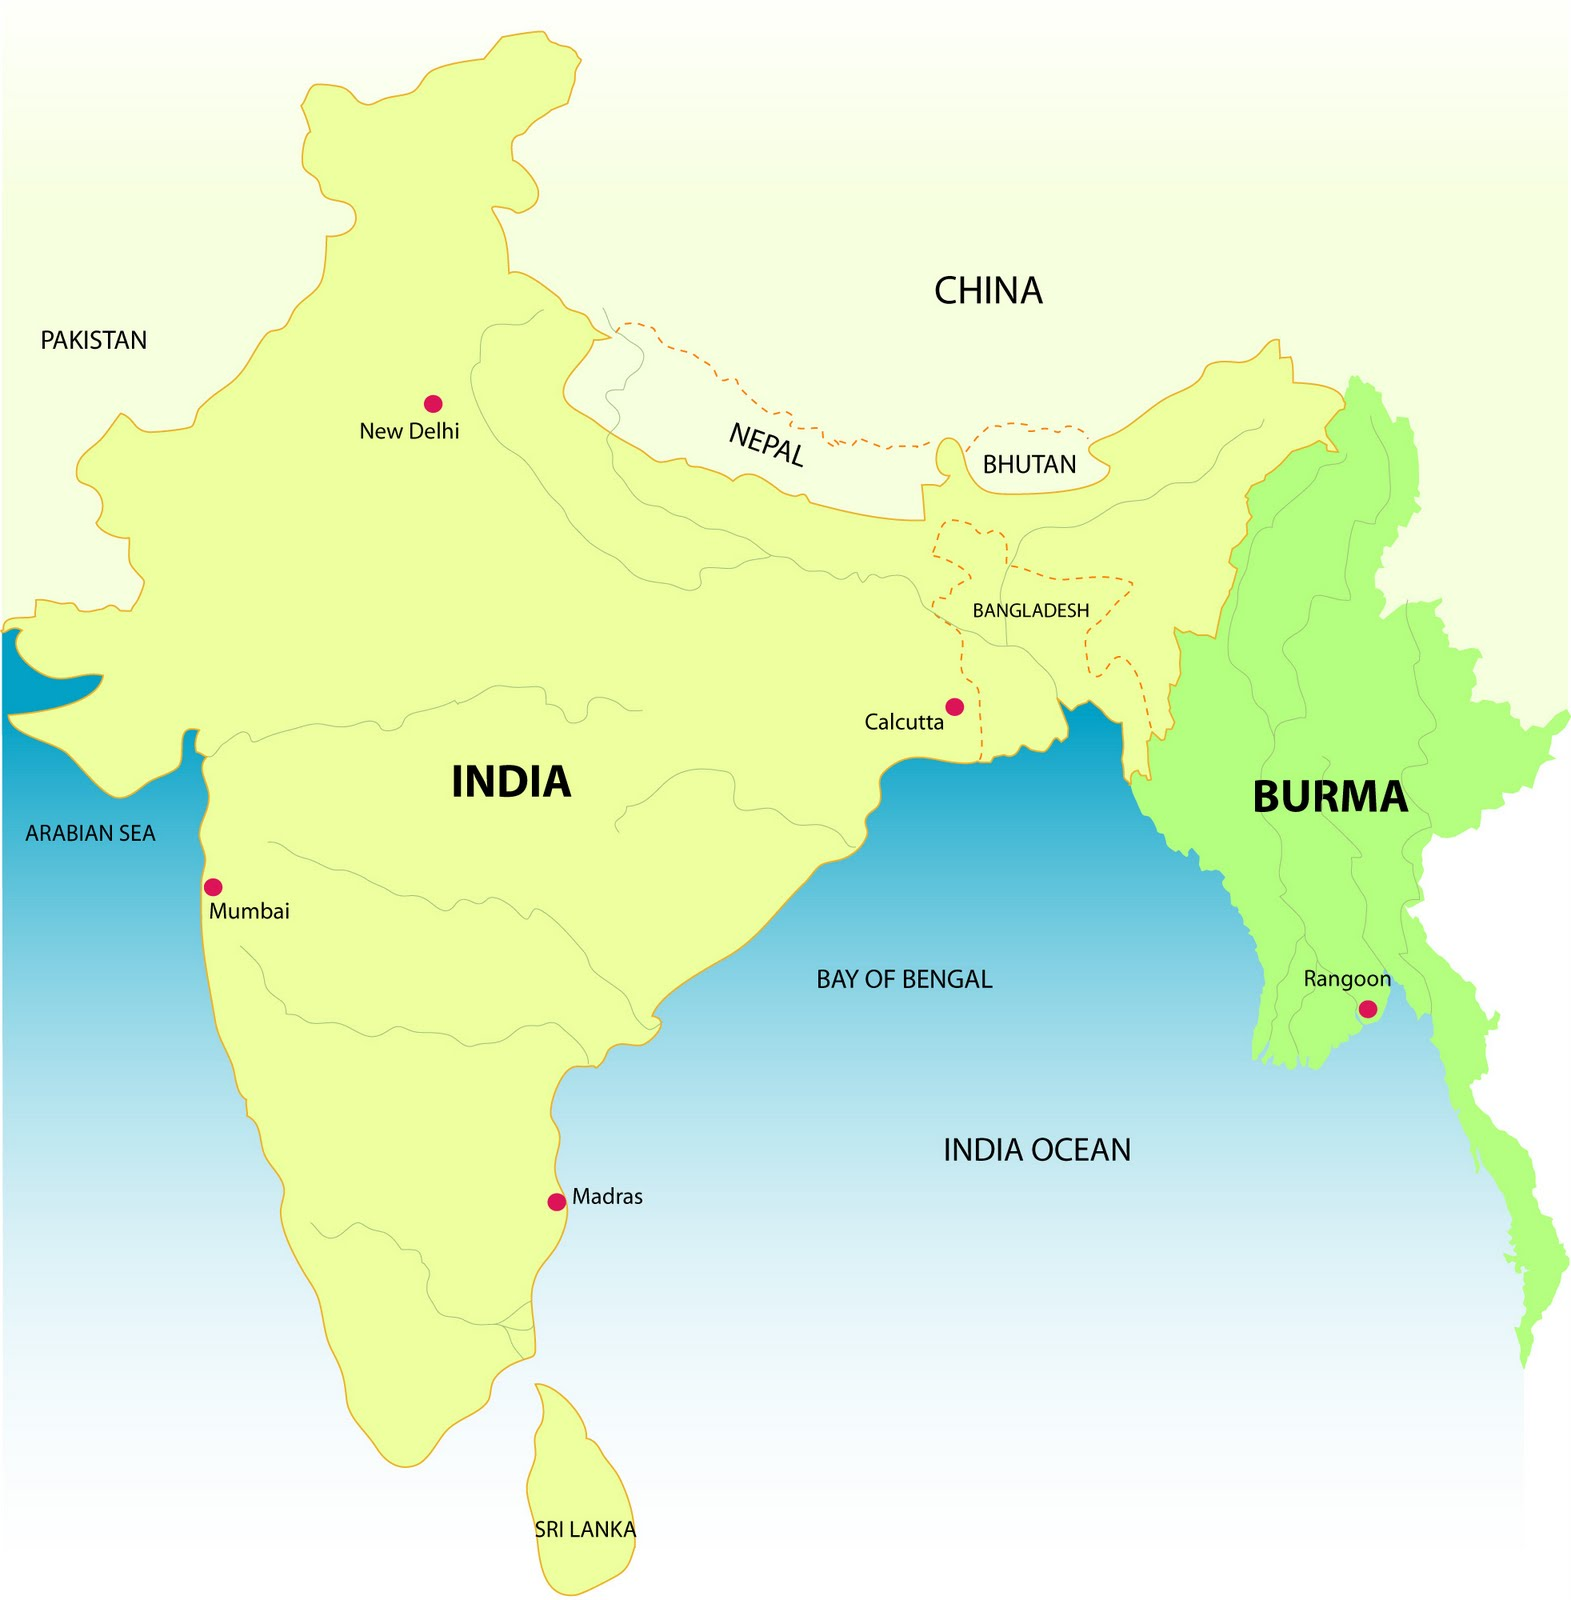 Where Is Burma In India Map - Where is myanmar